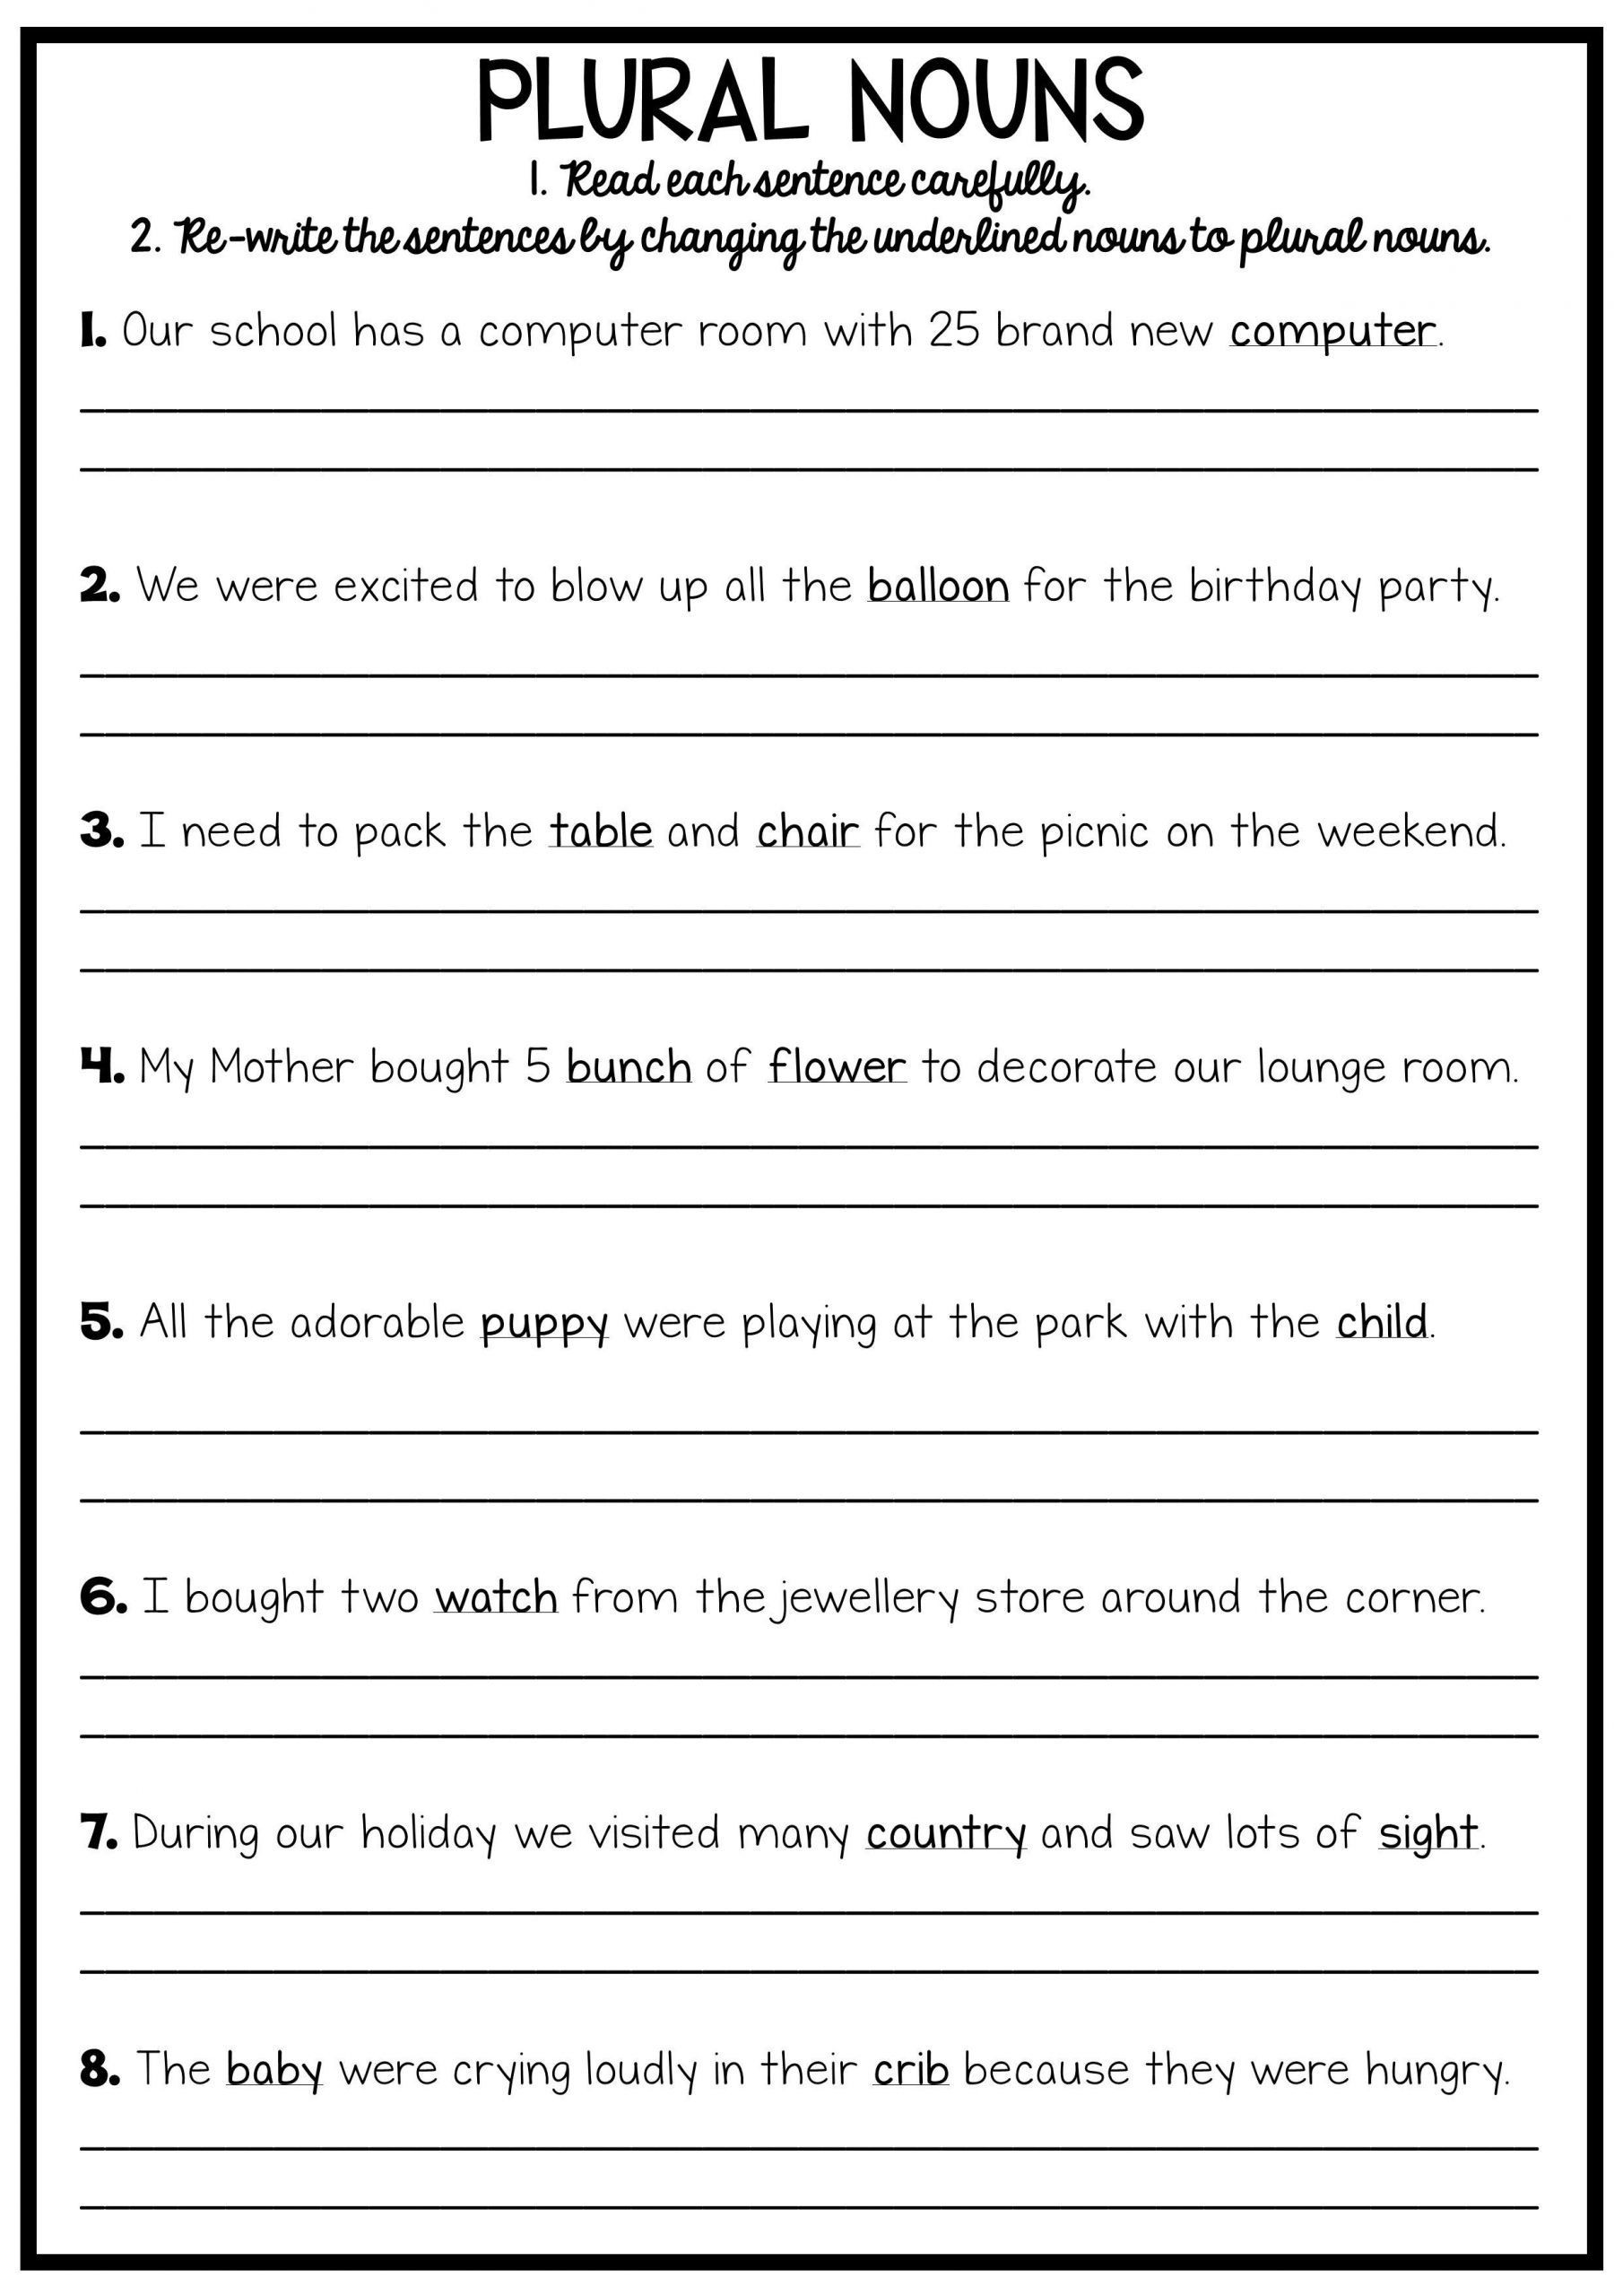 Pronoun Worksheets 6th Grade 2 Pronoun Worksheets for 6th Graders Printable Reading and